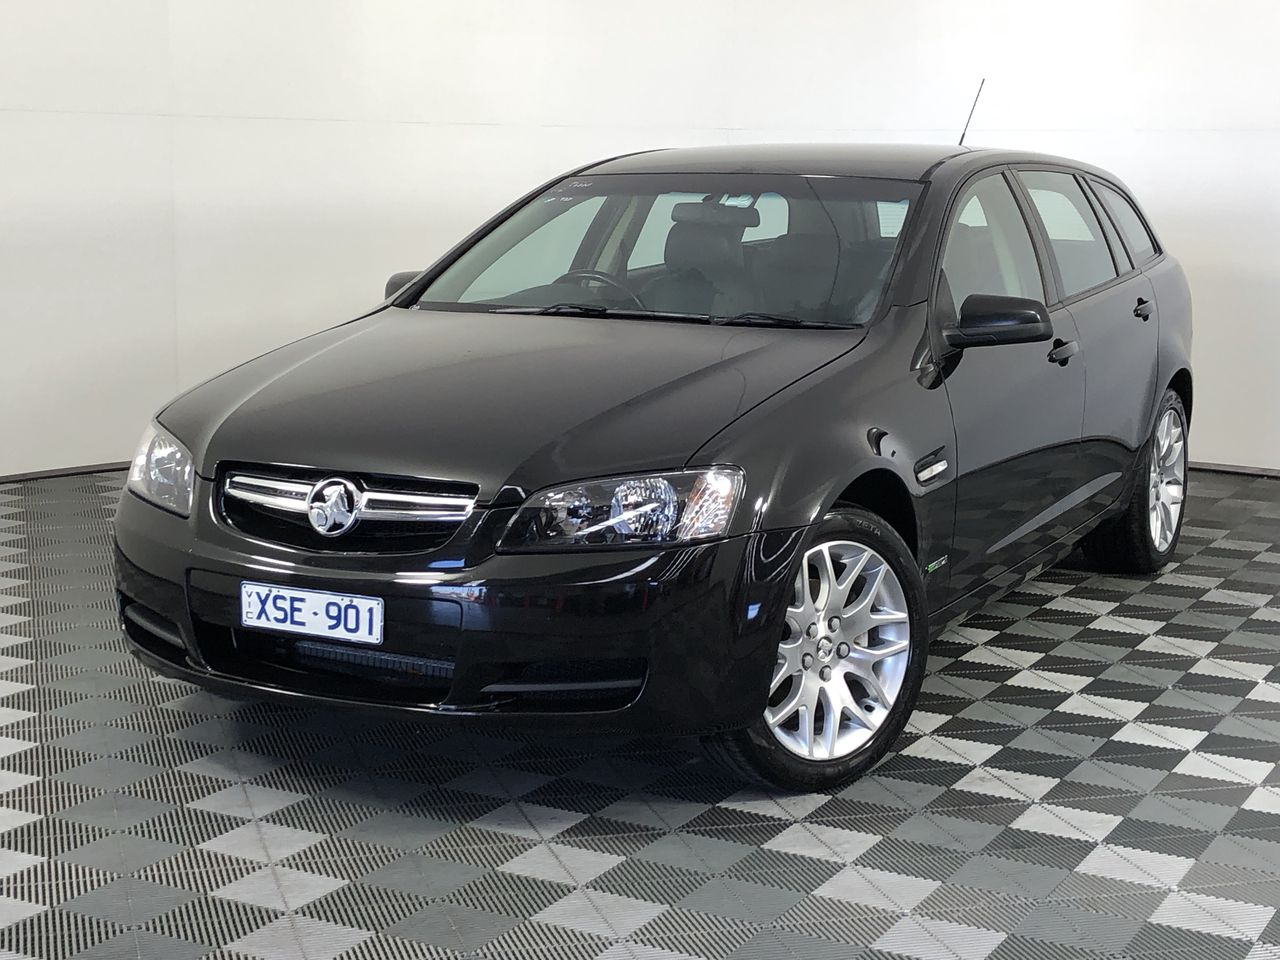 2010 Holden Sportwagon Omega VE Automatic (RWC ISSUED 22-10-19)